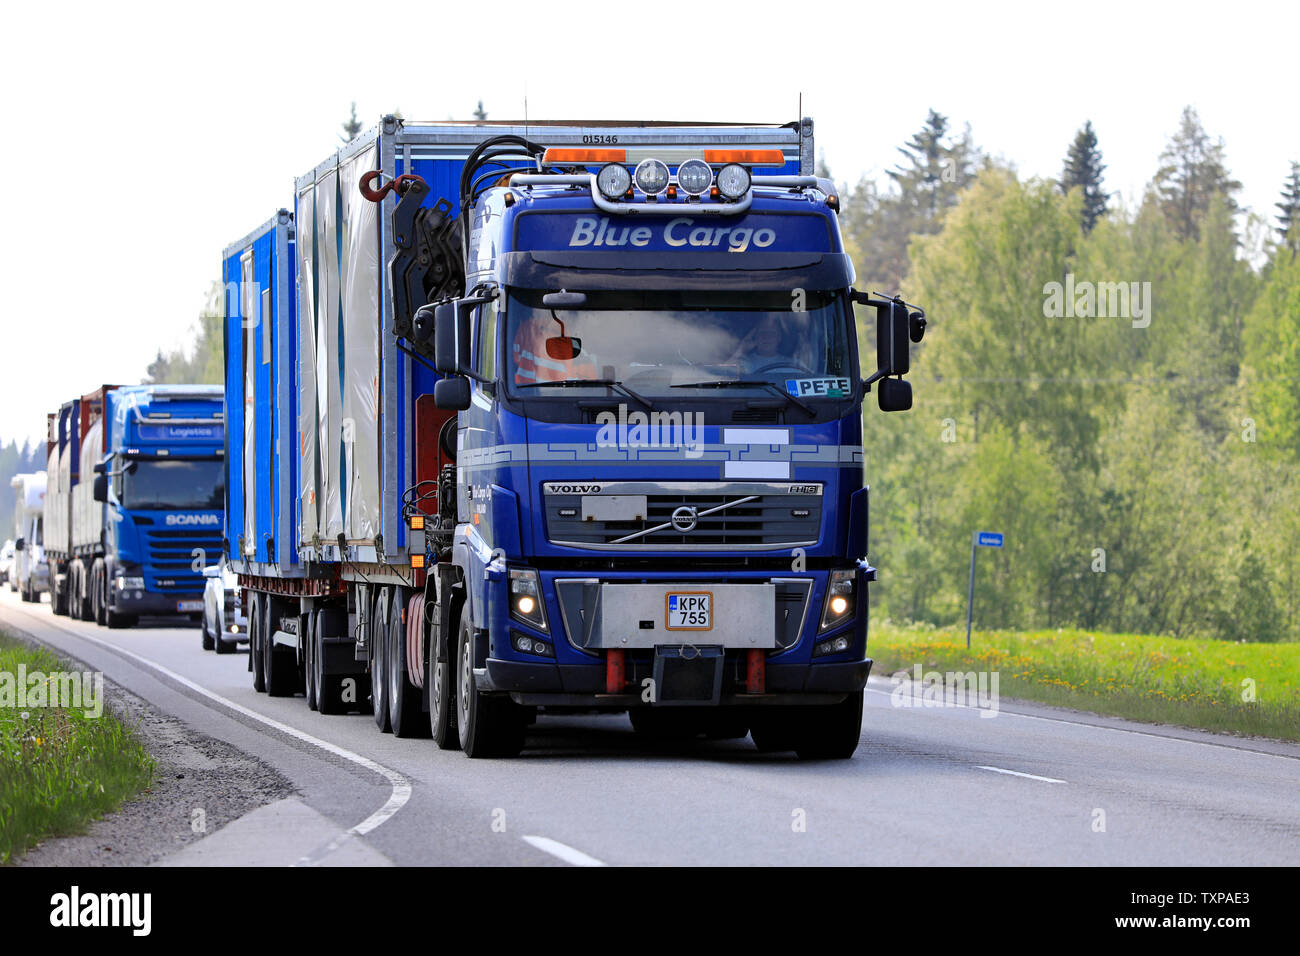 Volvo Fh16 Stock Photos & Volvo Fh16 Stock Images - Alamy